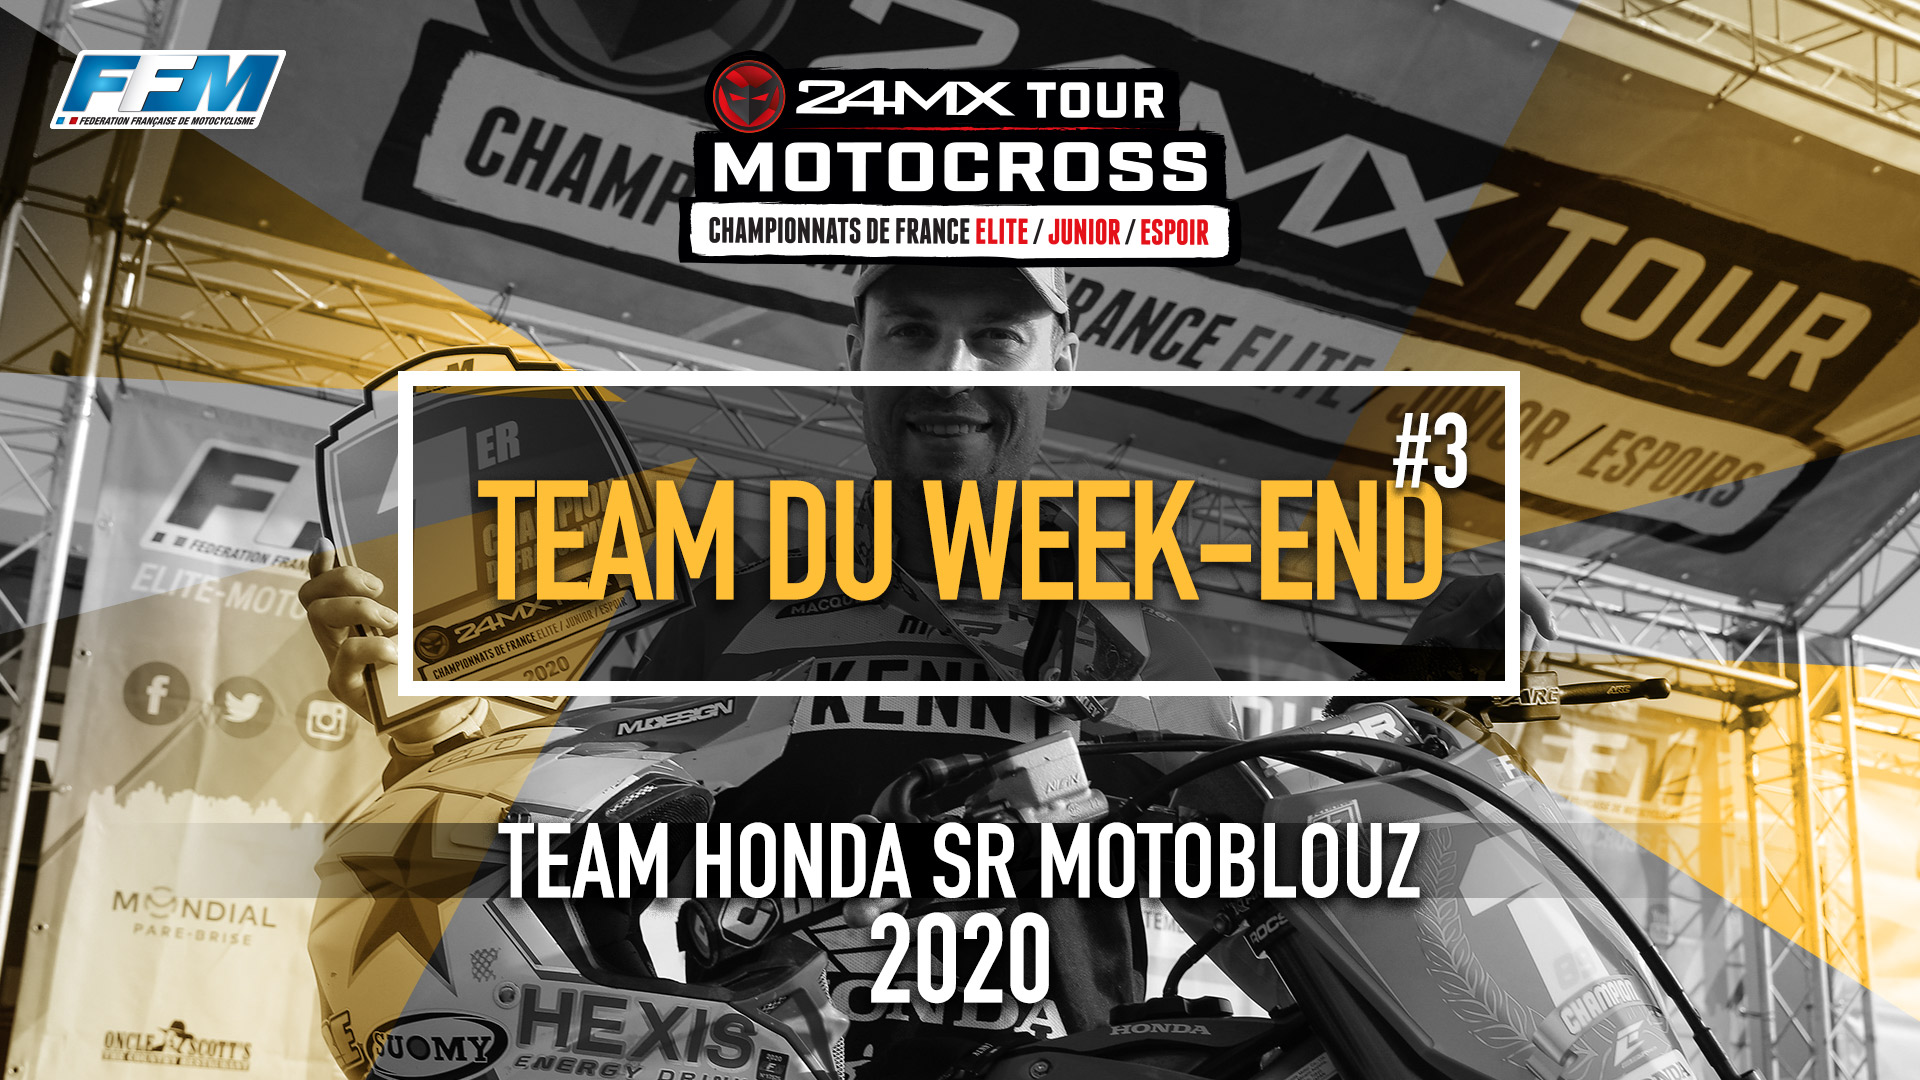 // LE TEAM DU WEEKEND – TEAM HONDA SR MOTOBLOUZ //